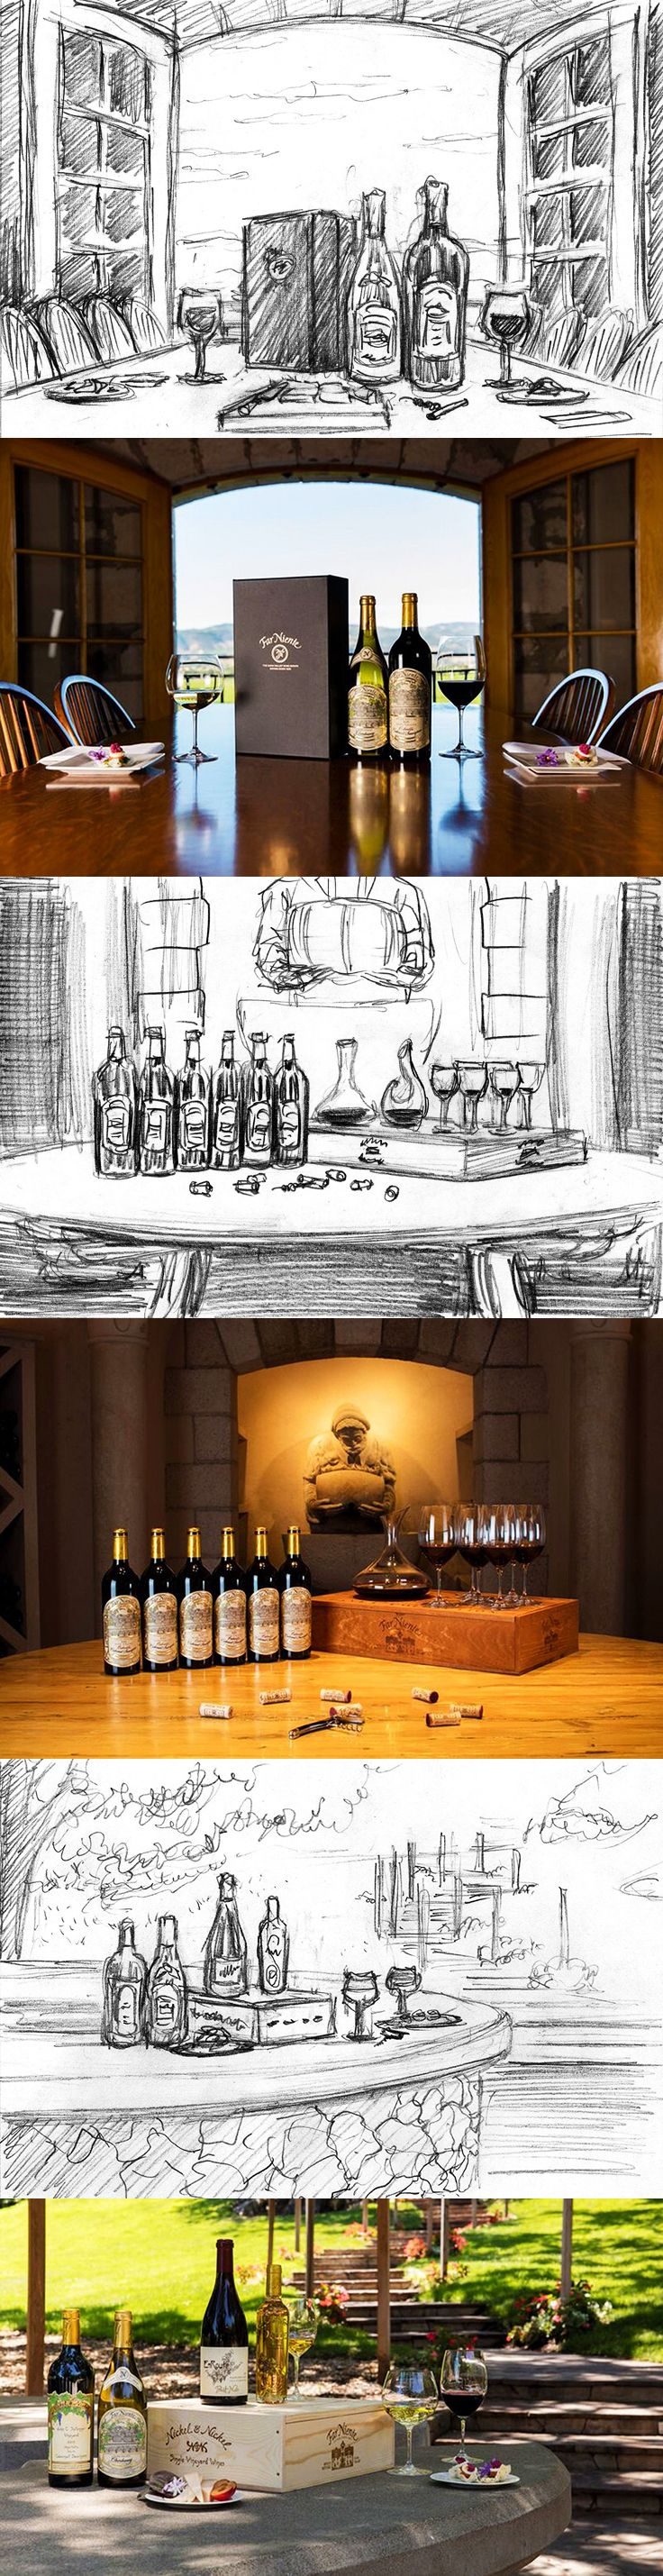 Far Niente Winery   Art direction for product photography   by designthis!